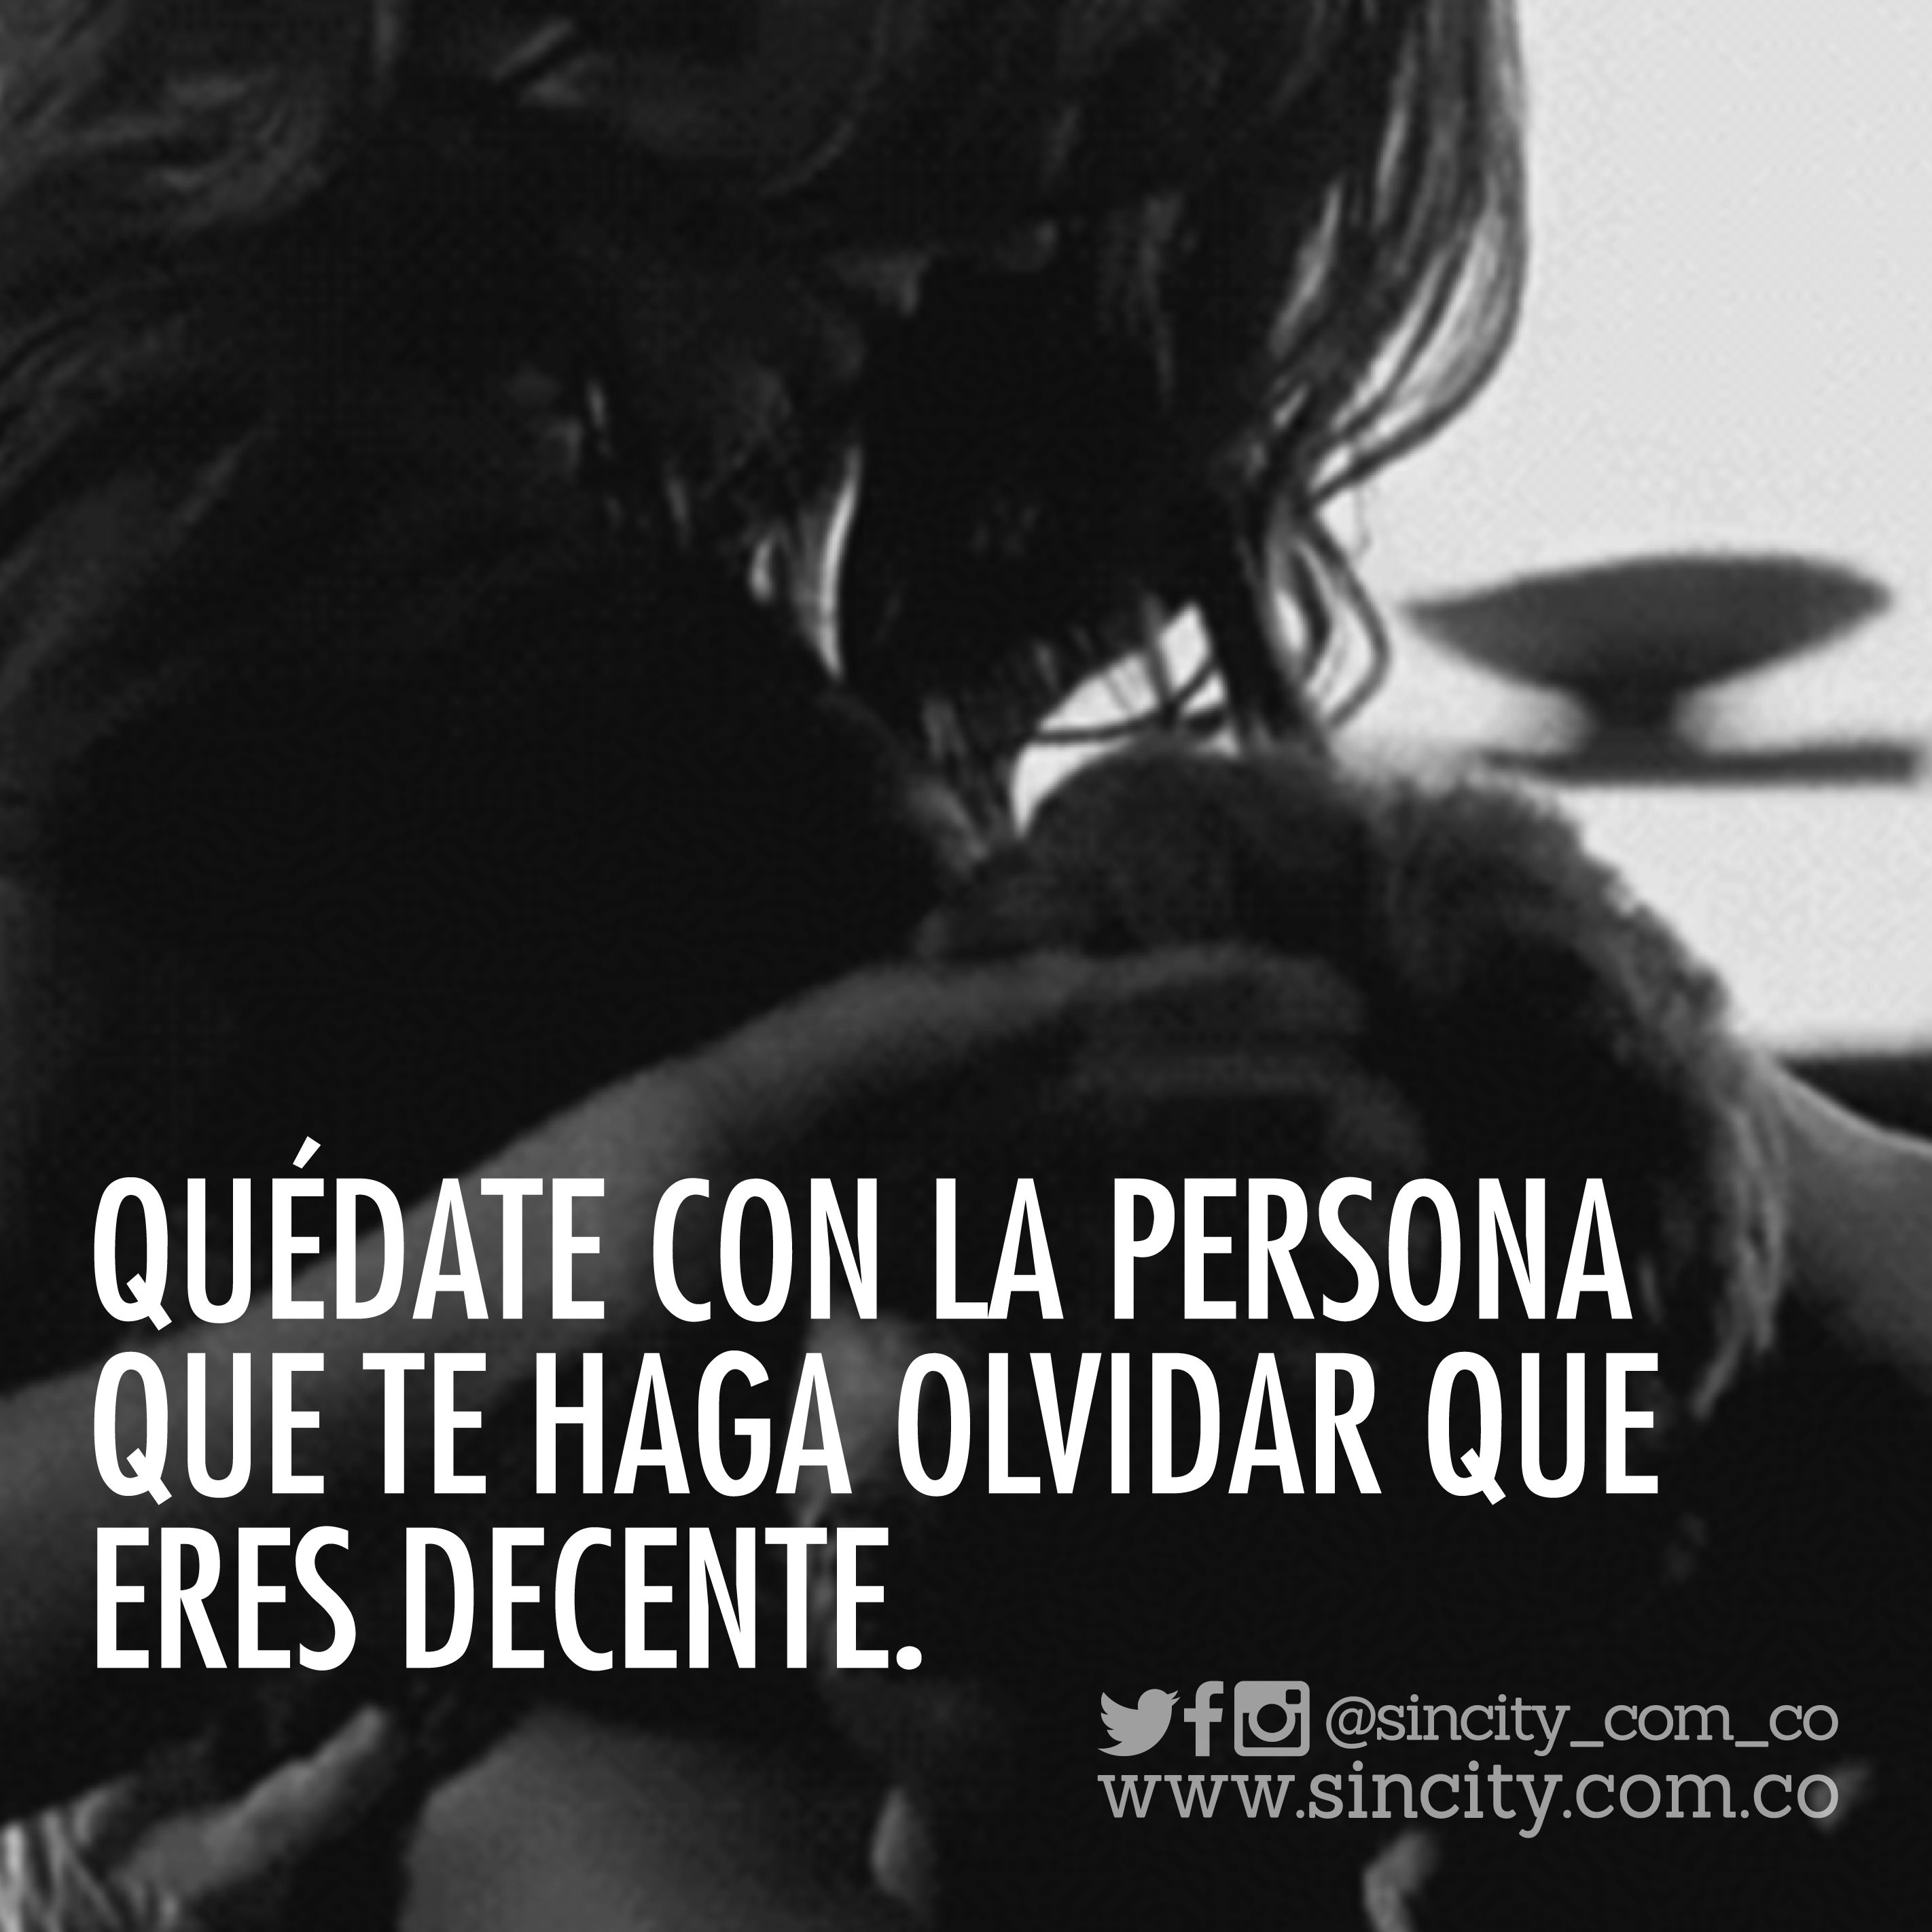 nochessincity parati quotes igers palabras amor